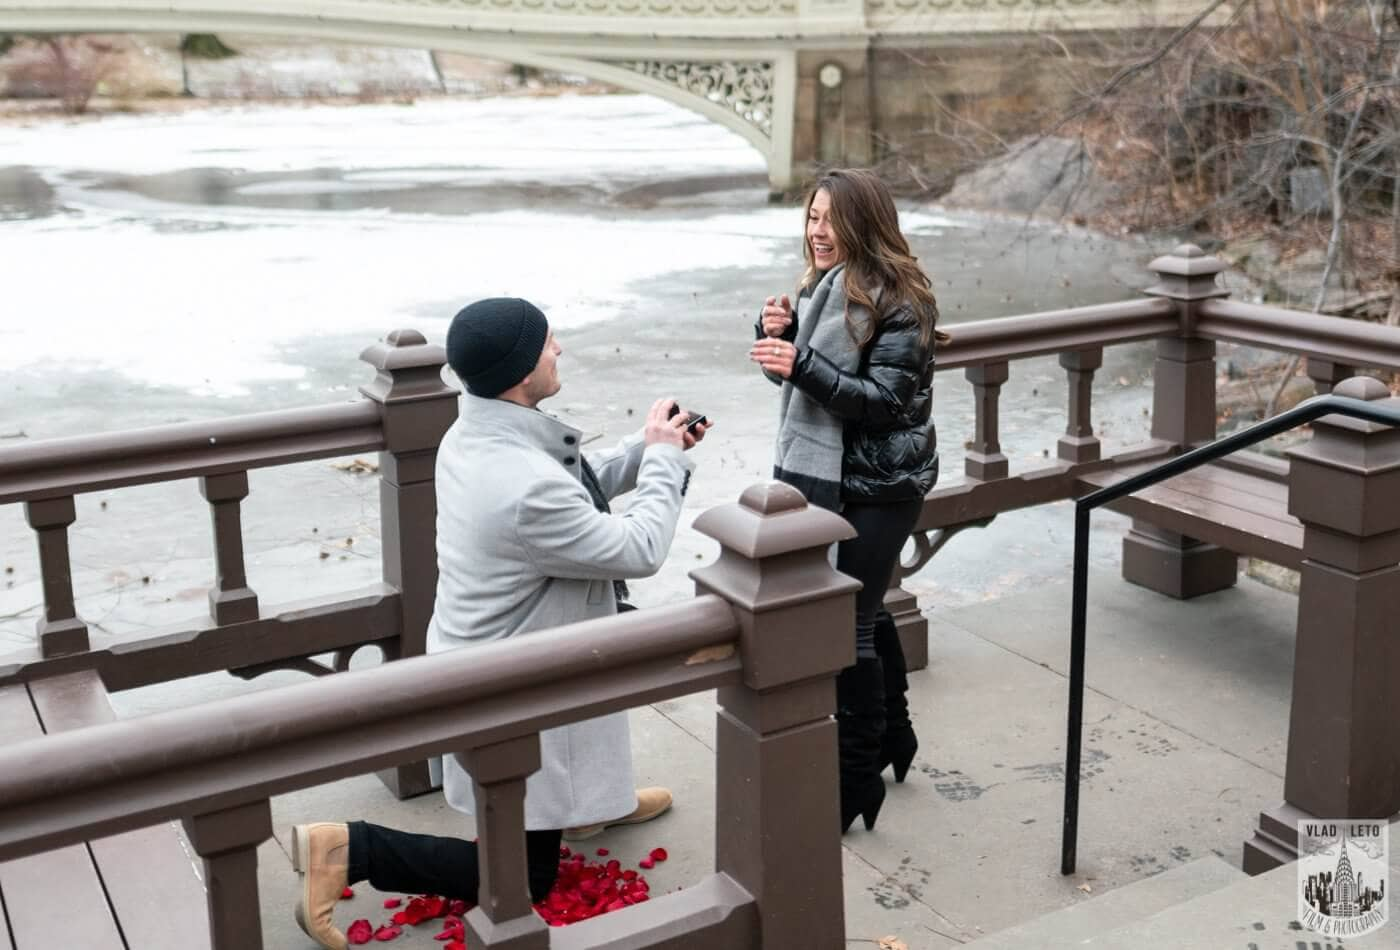 Photo Bow bridge surprise marriage proposal. | VladLeto